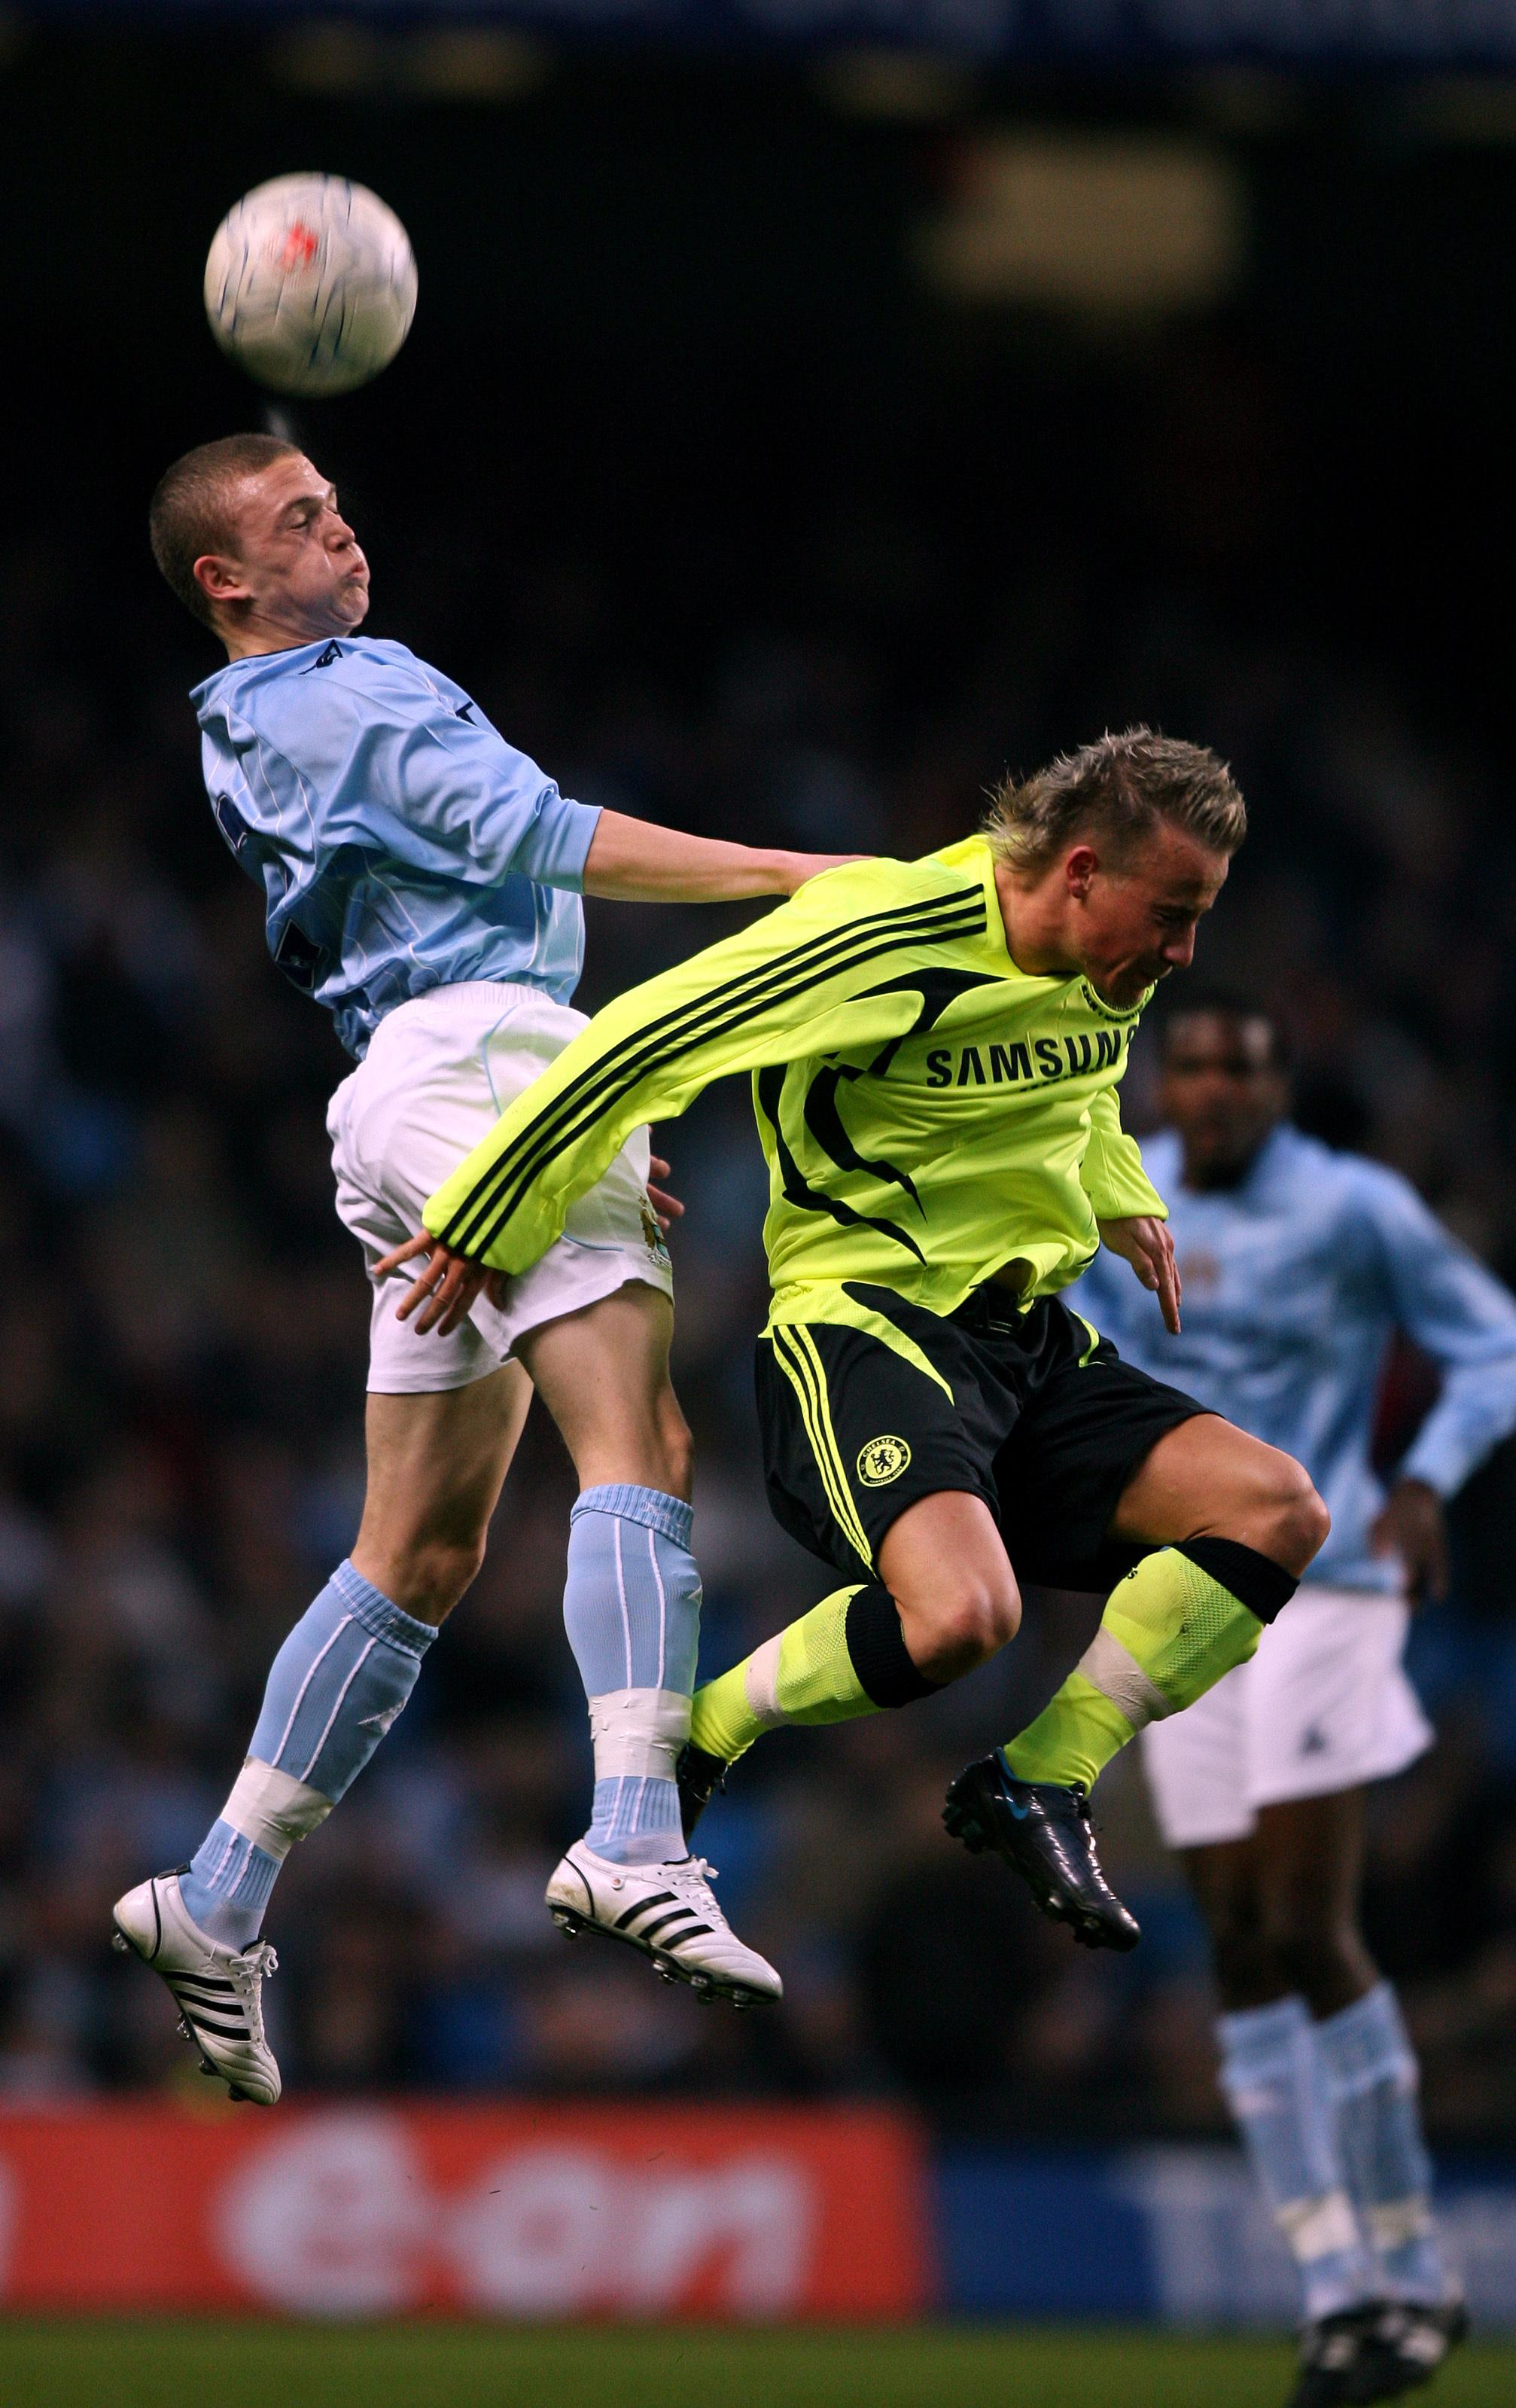 There's a prize on offer for whoever can name that Chelsea player he's challenging with